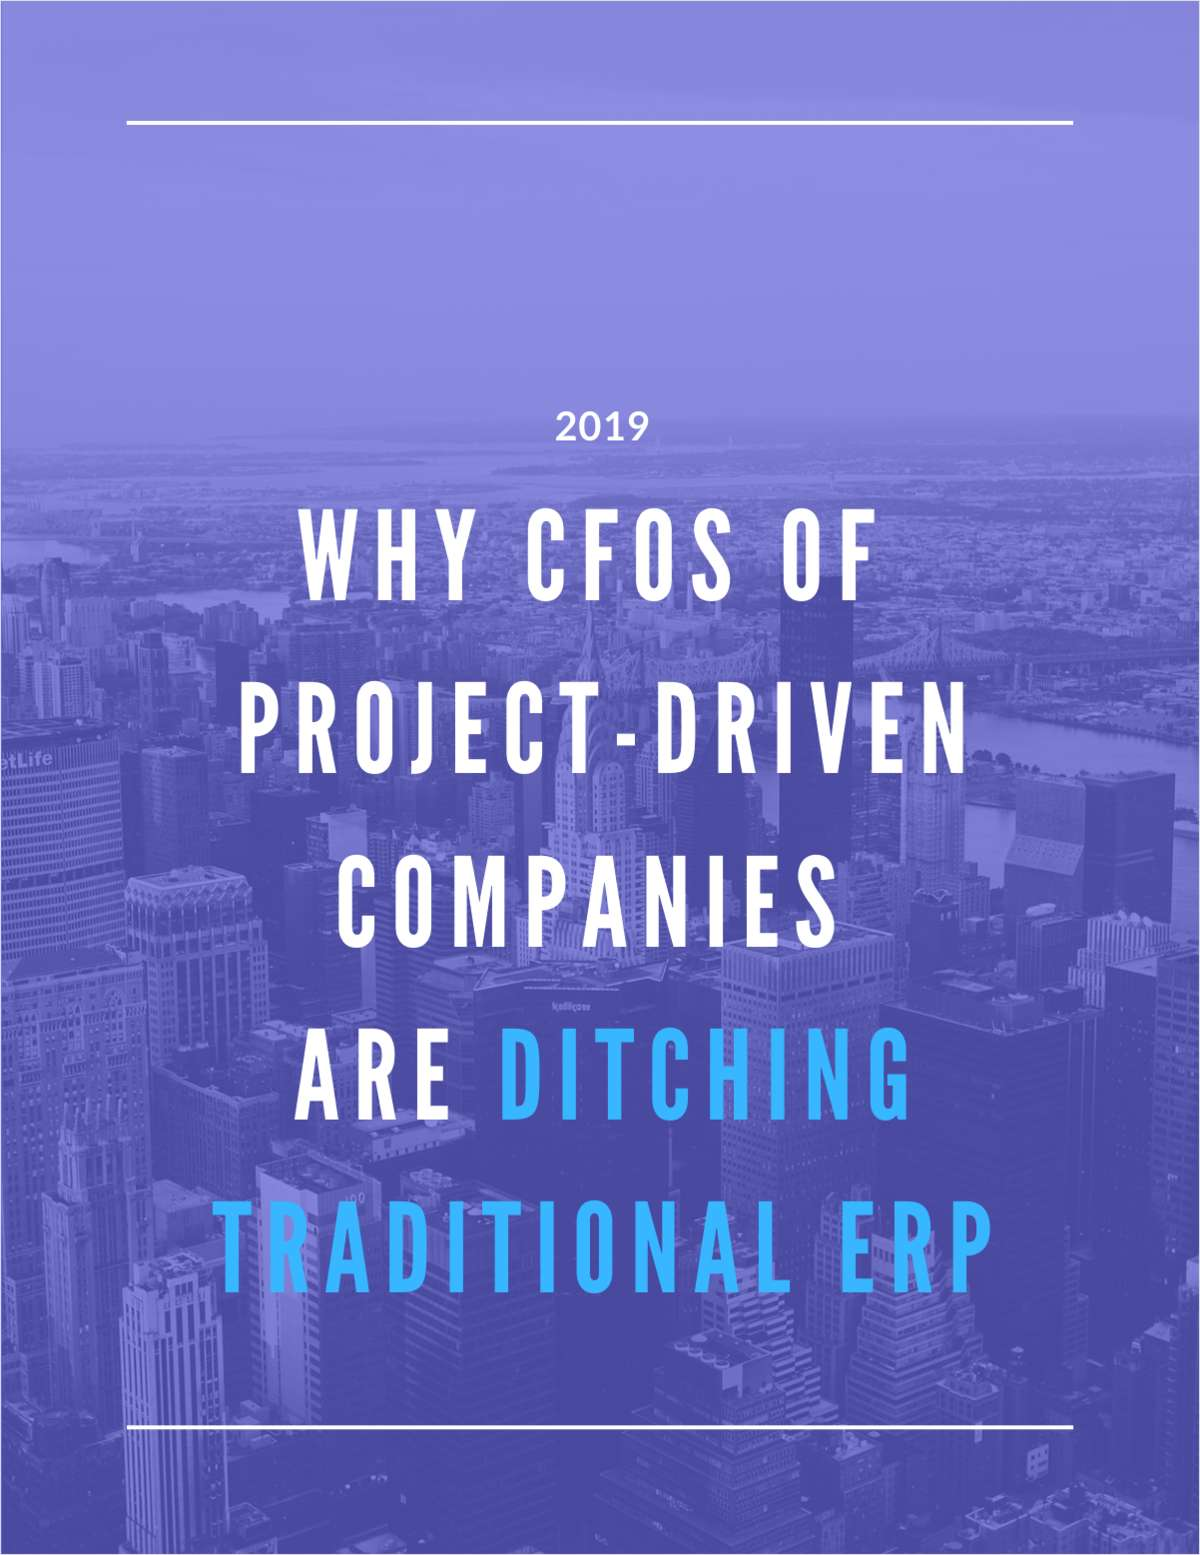 Why CFOs of Project-Driven Companies Are Ditching Traditional ERP